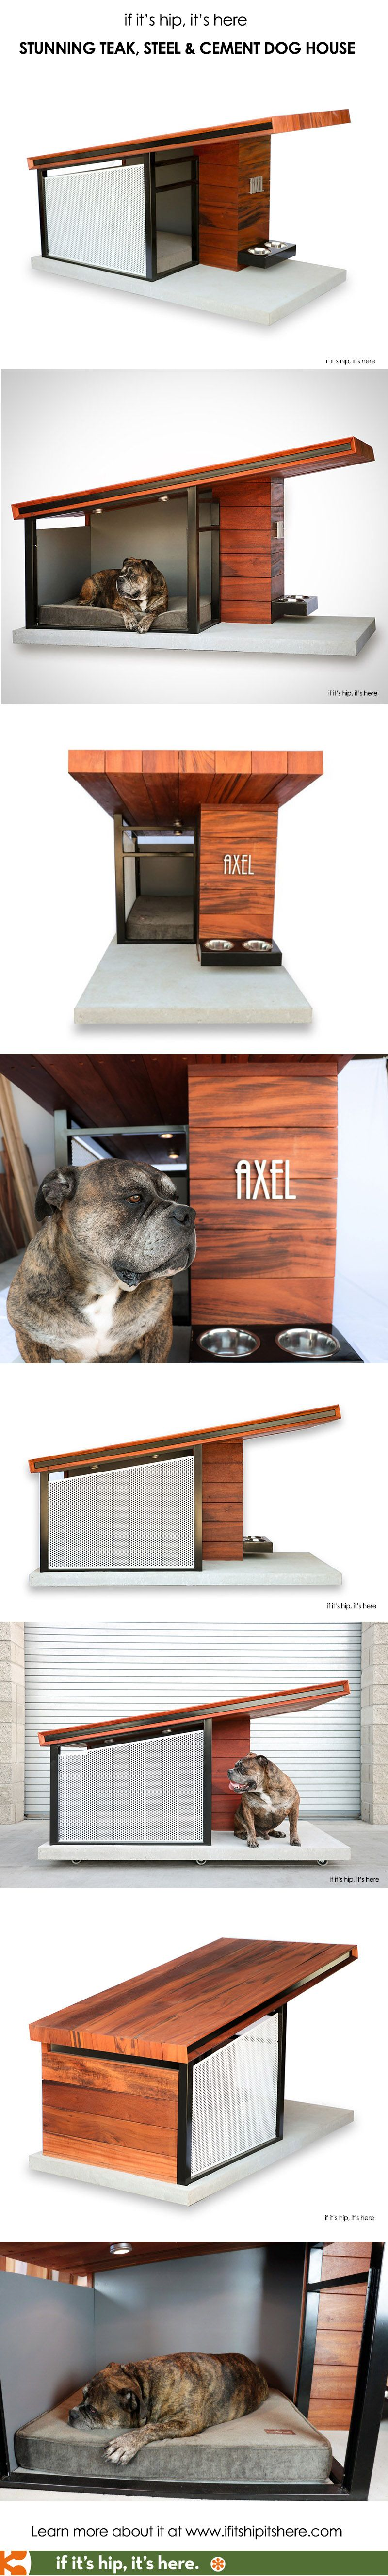 How great is this dog house? Learn all the details price and more at http